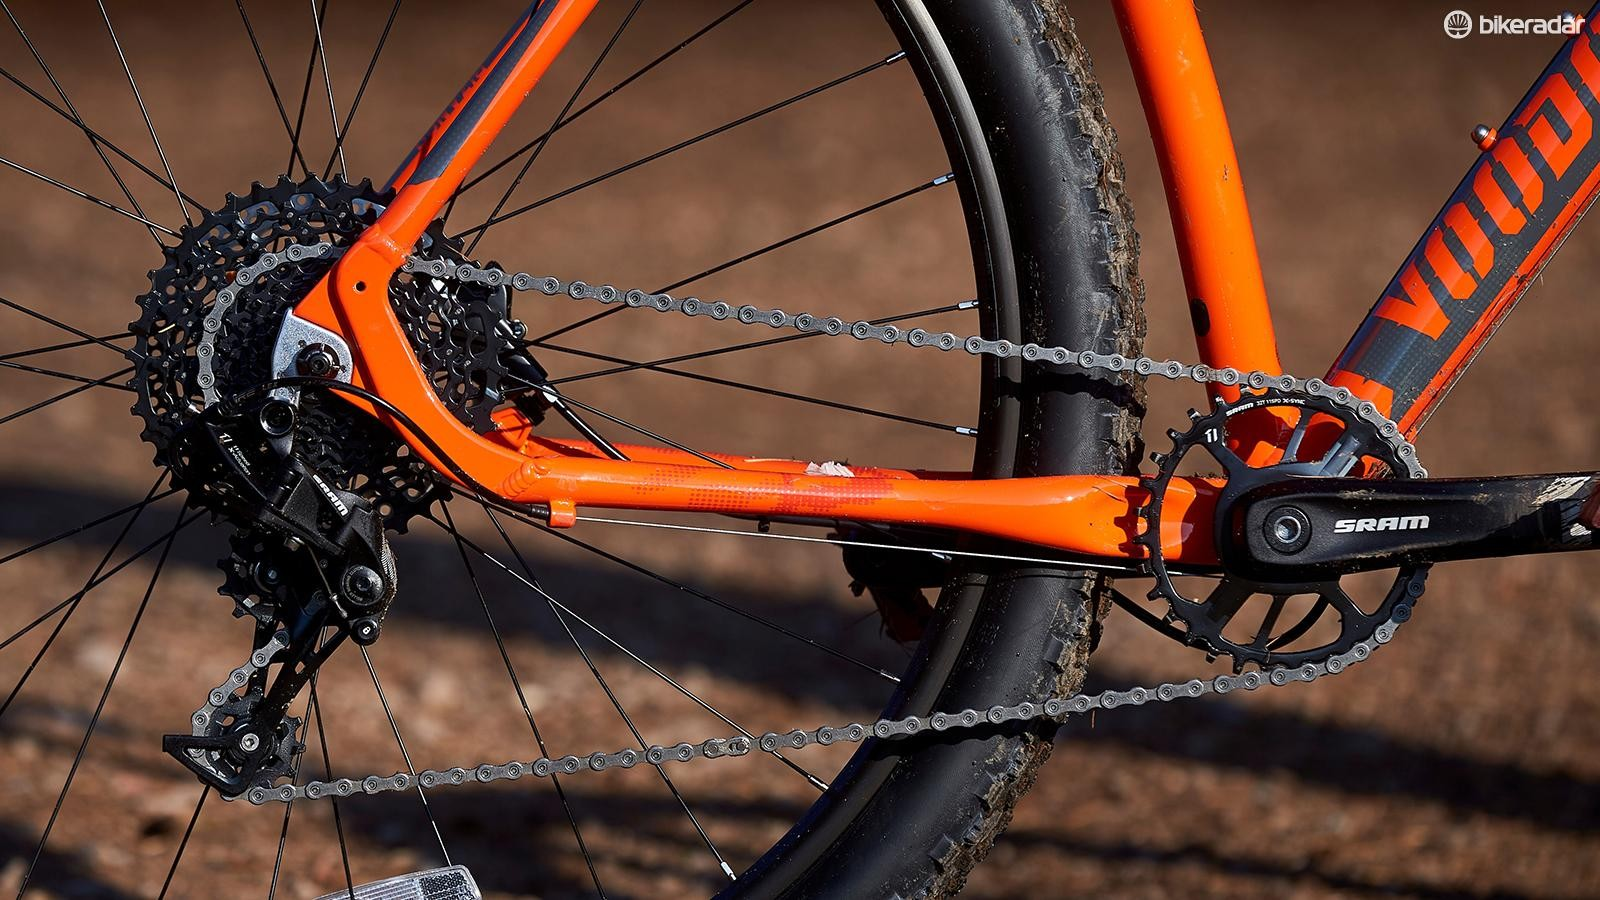 A SRAM NX 11-speed drivetrain is something to shout about at this price. It offers simple, secure and intuitive shifting